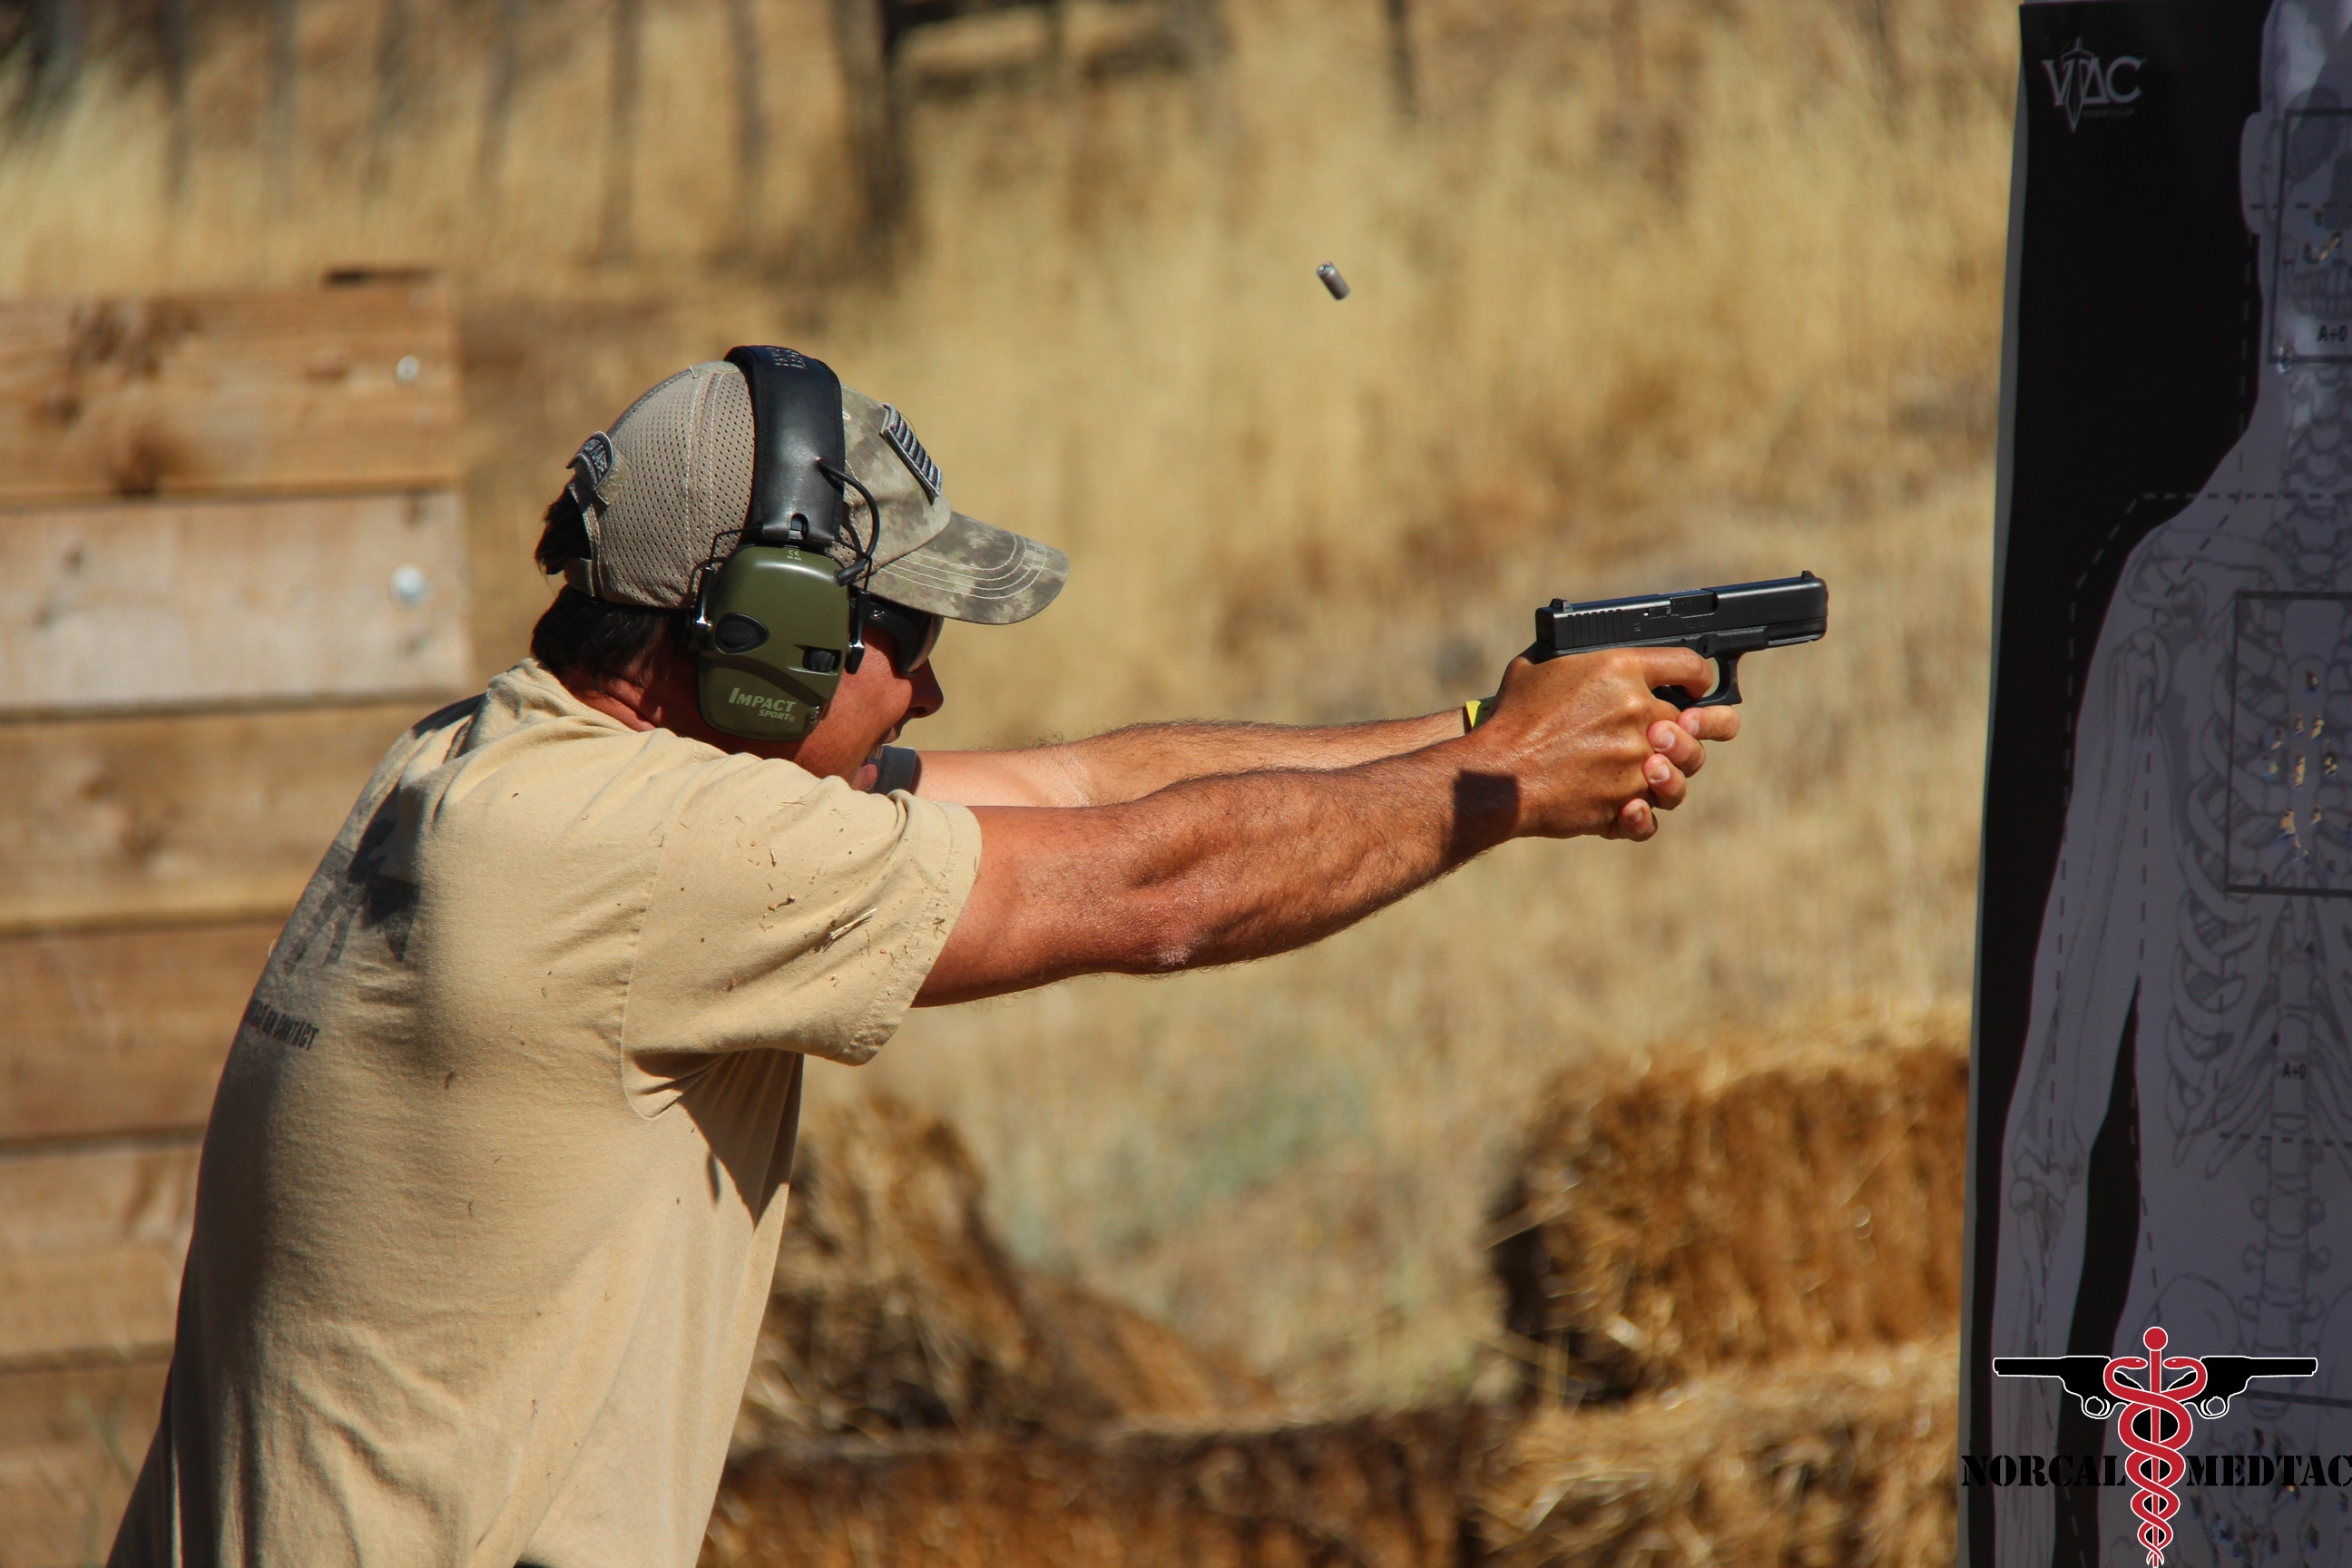 Defensive Pistol 101 (Morgan Hill, CA)